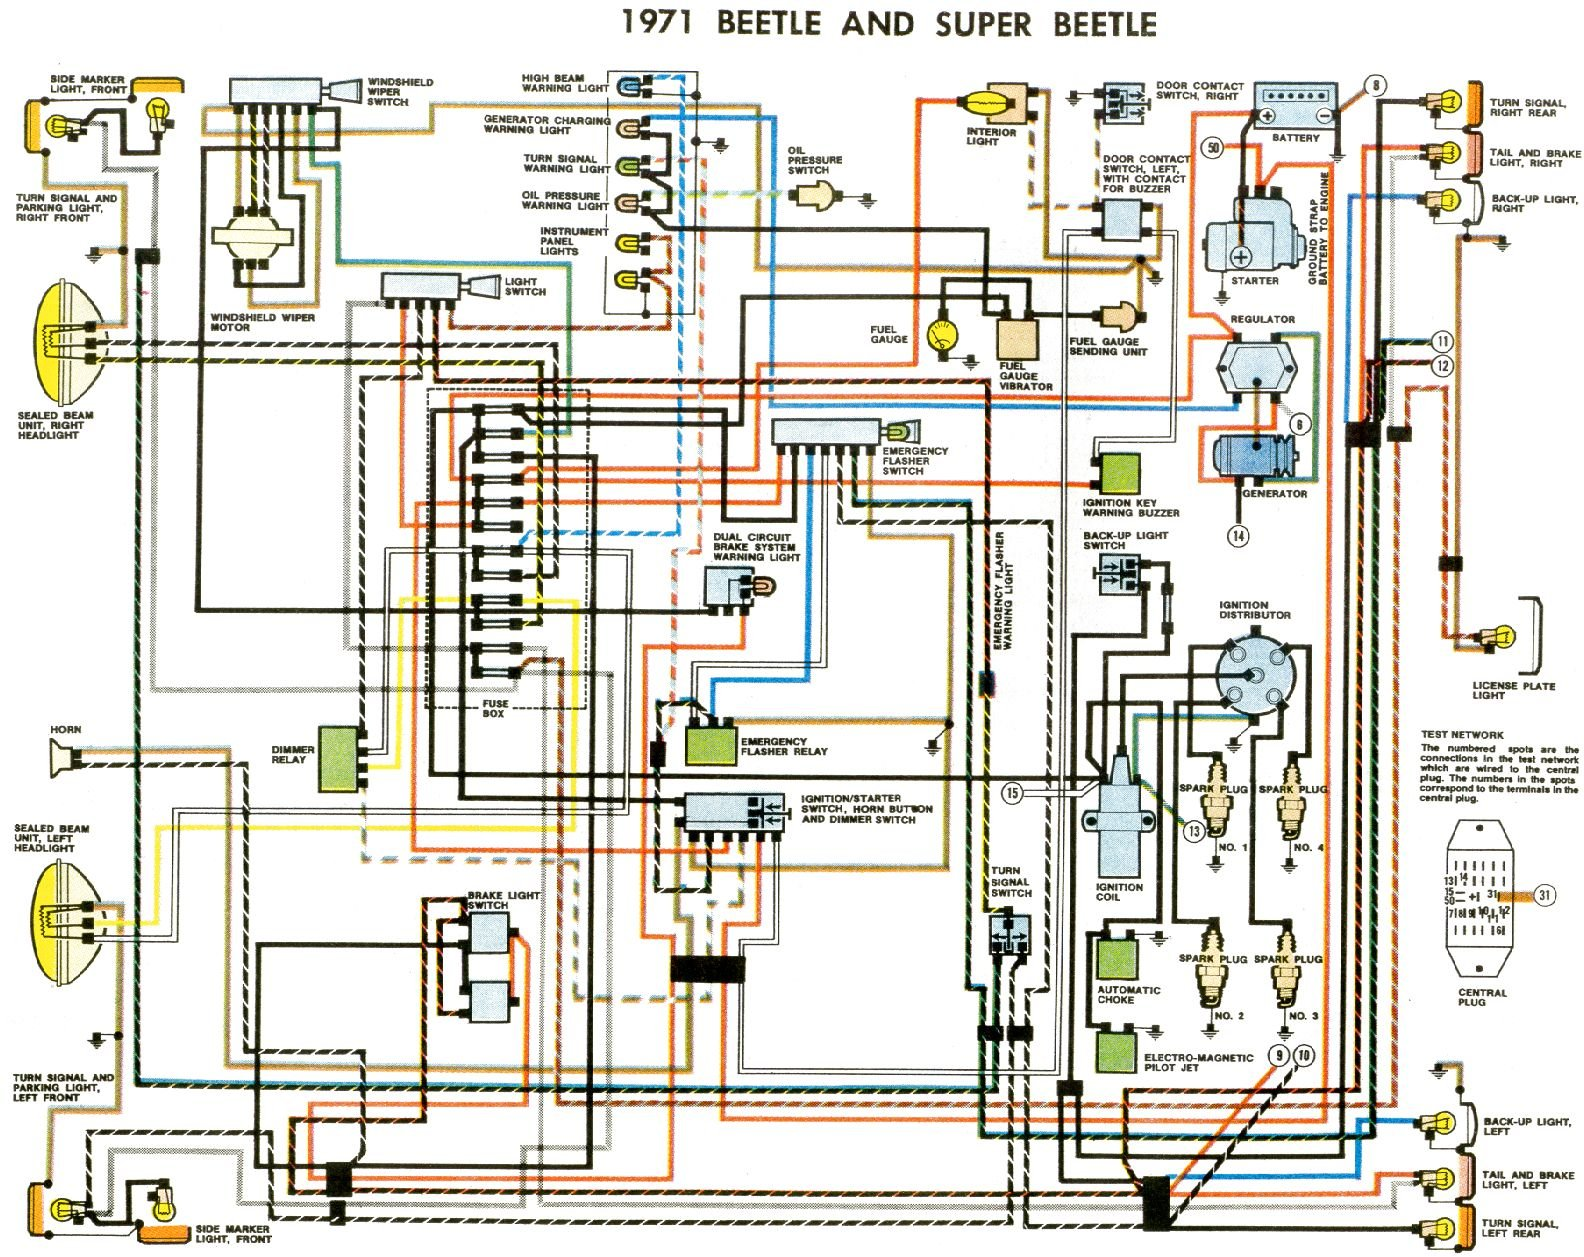 bug_71 1971 beetle wiring diagram (usa) thegoldenbug com 1973 vw wiring diagram at reclaimingppi.co